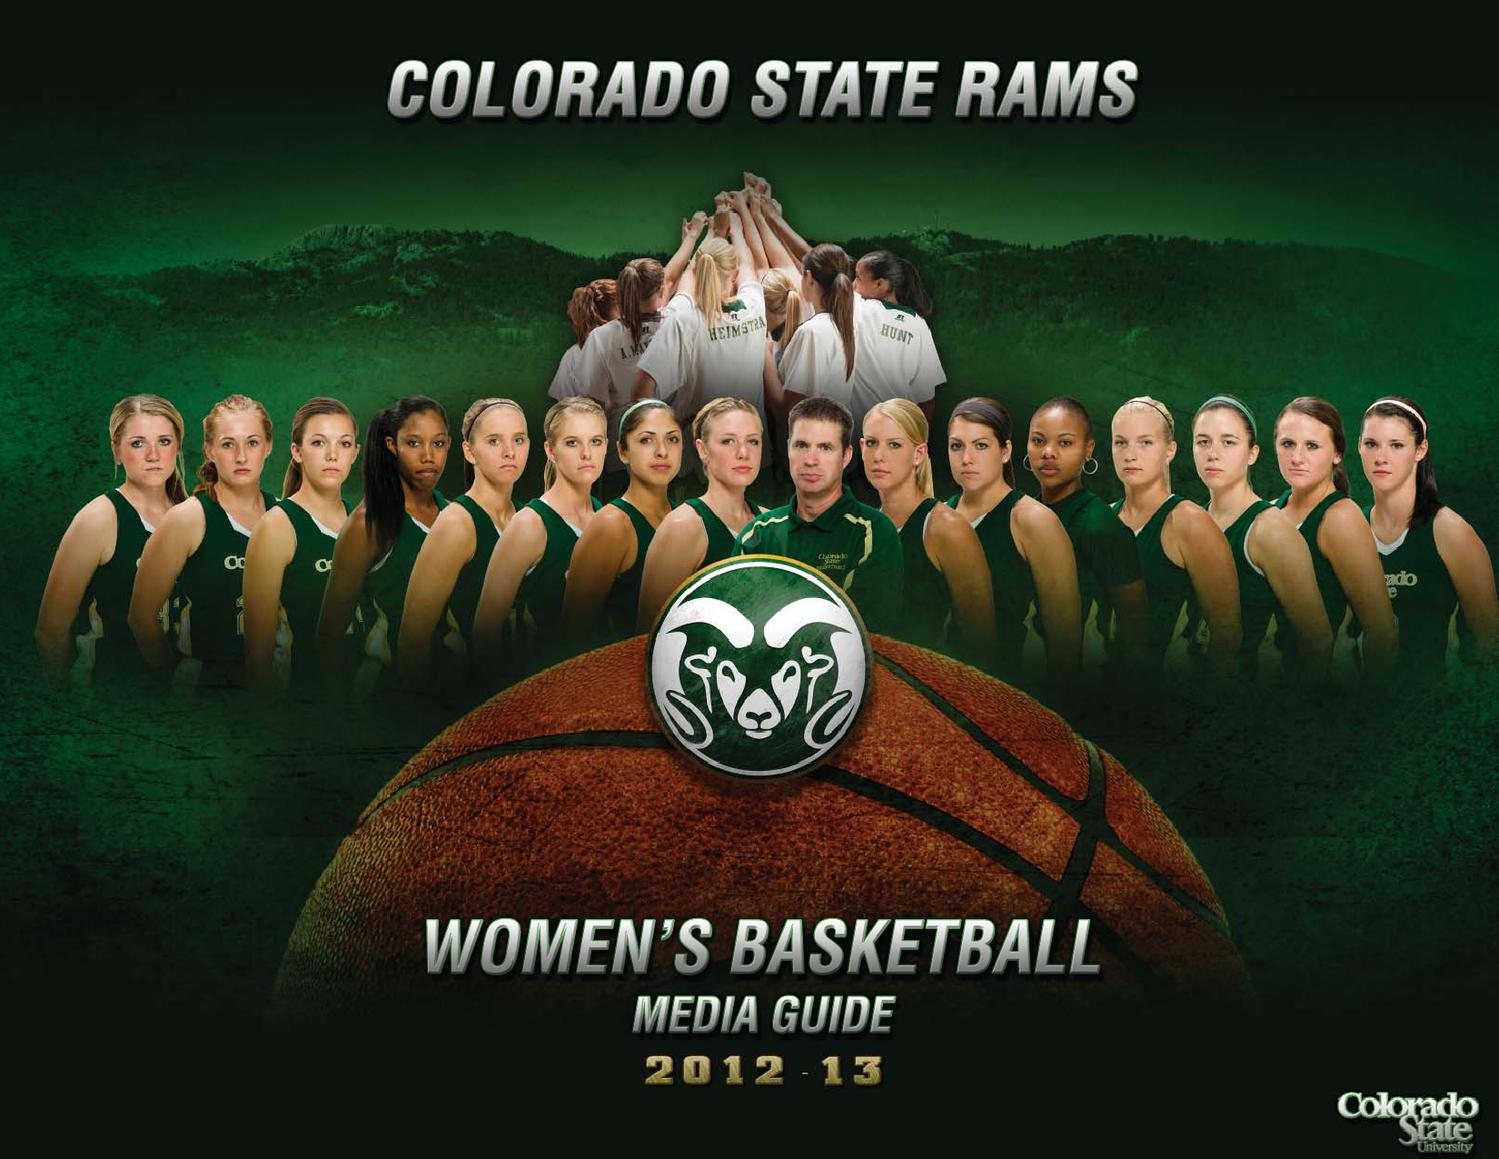 2012 13 women 39 s basketball media guide by colorado state for Conference table 1998 99